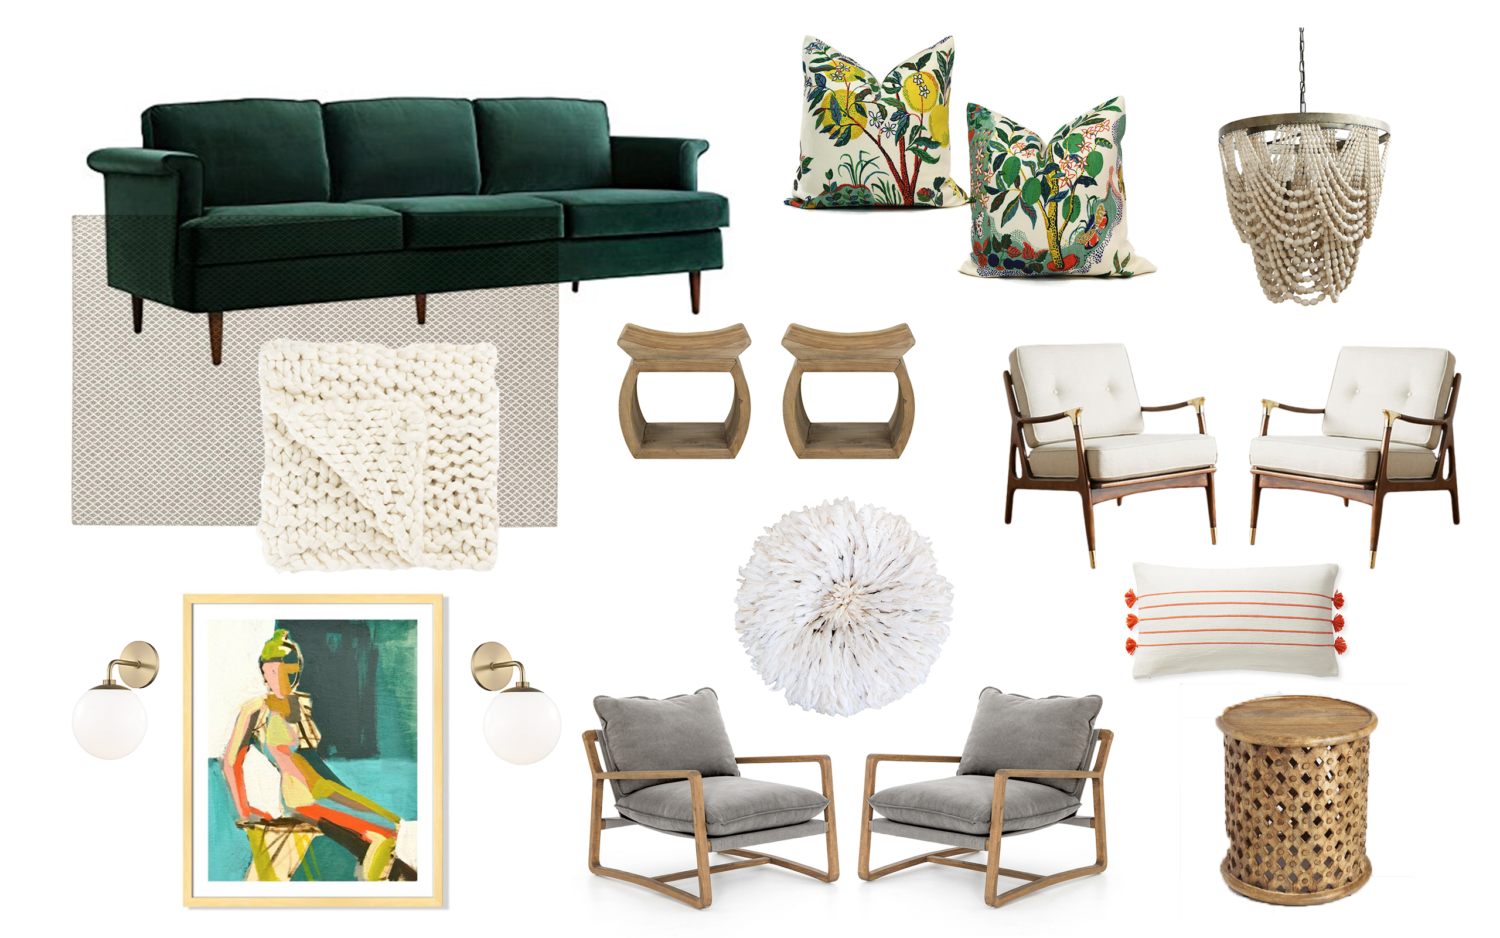 Cozy living room plans with full sources. The design includes a green velvet sofa, comfy lounge chairs, and lots of textural elements.